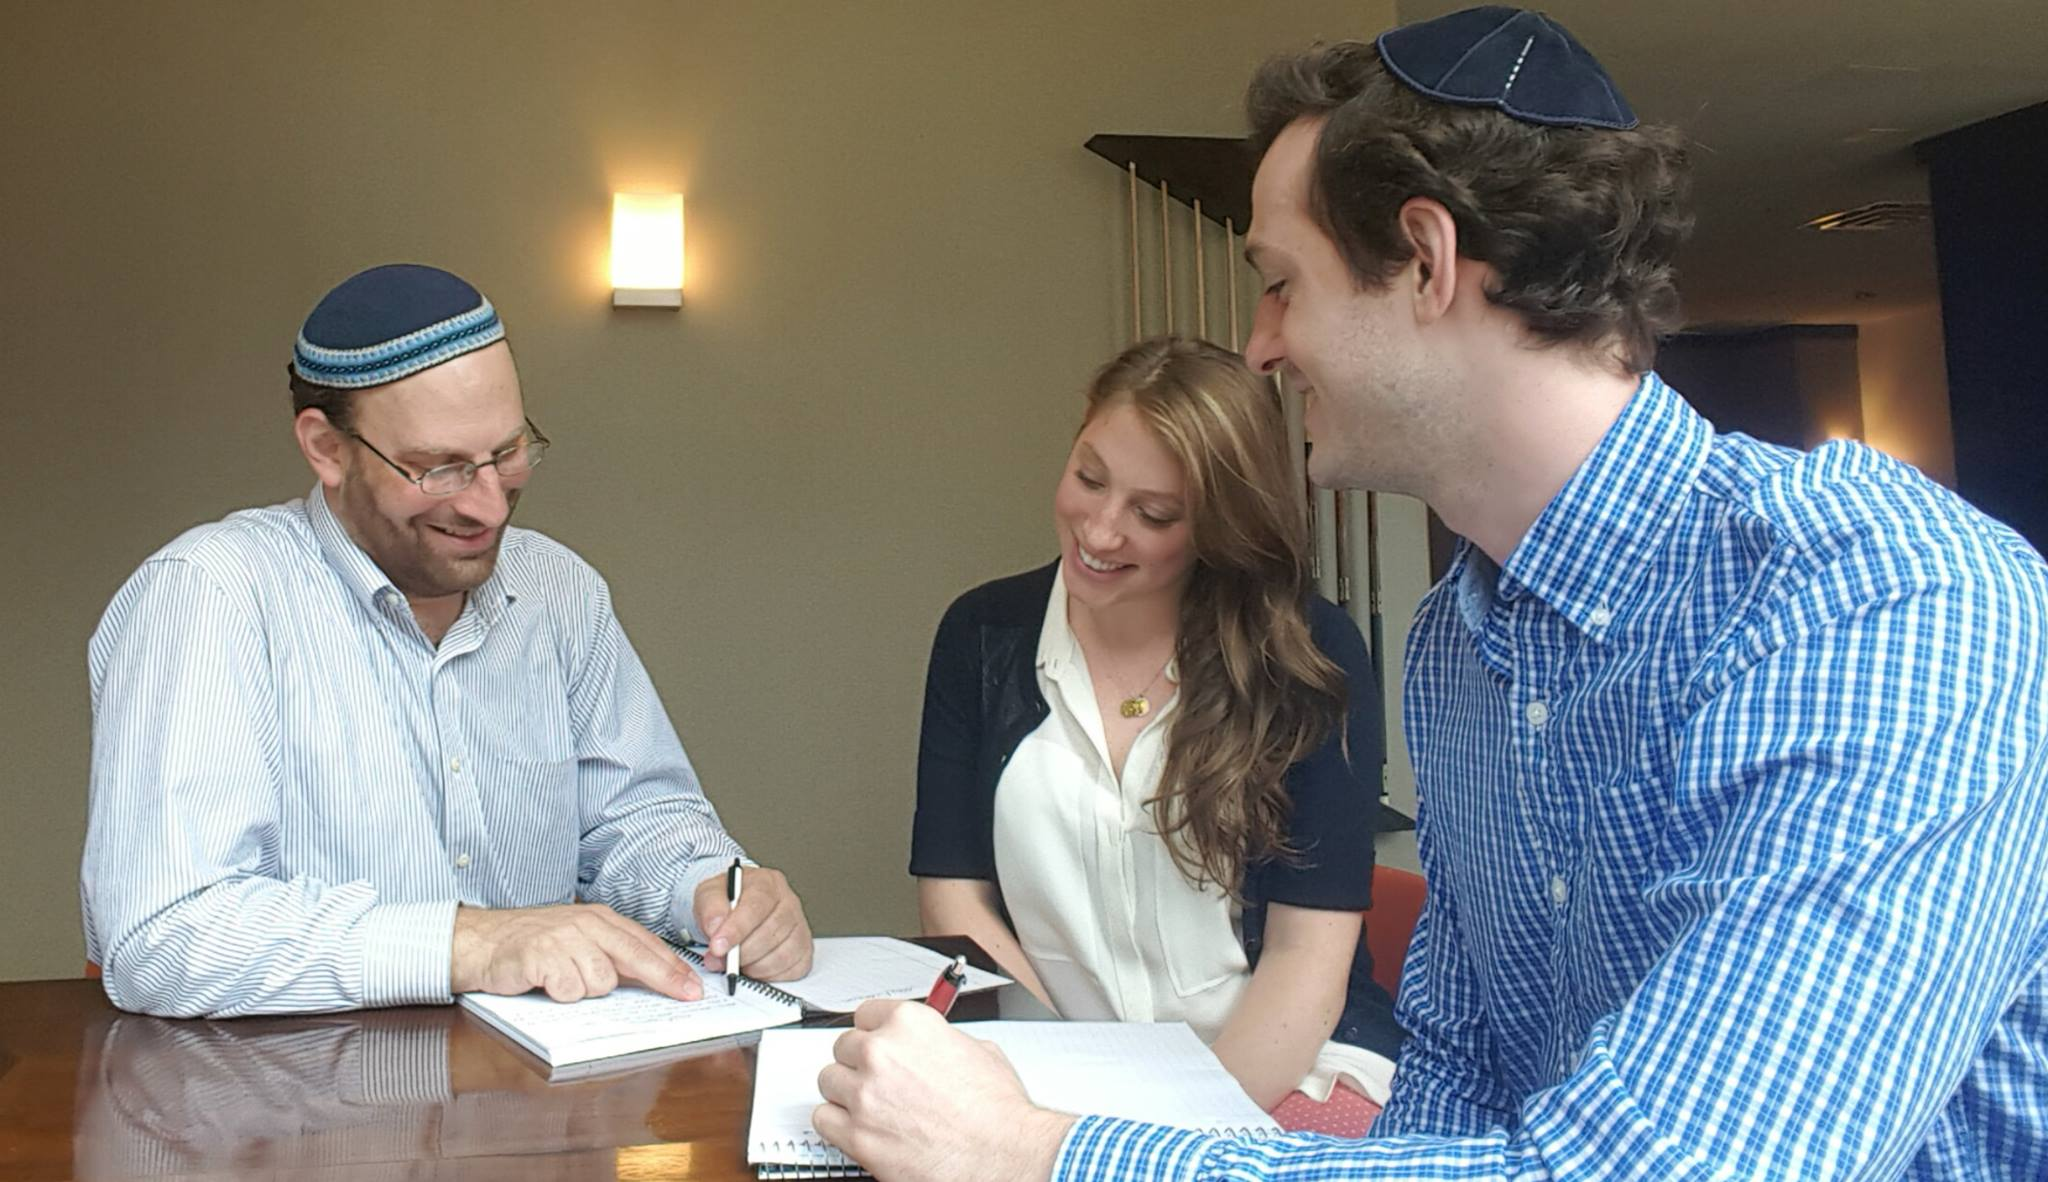 JLC Rabbi Kalb with couple